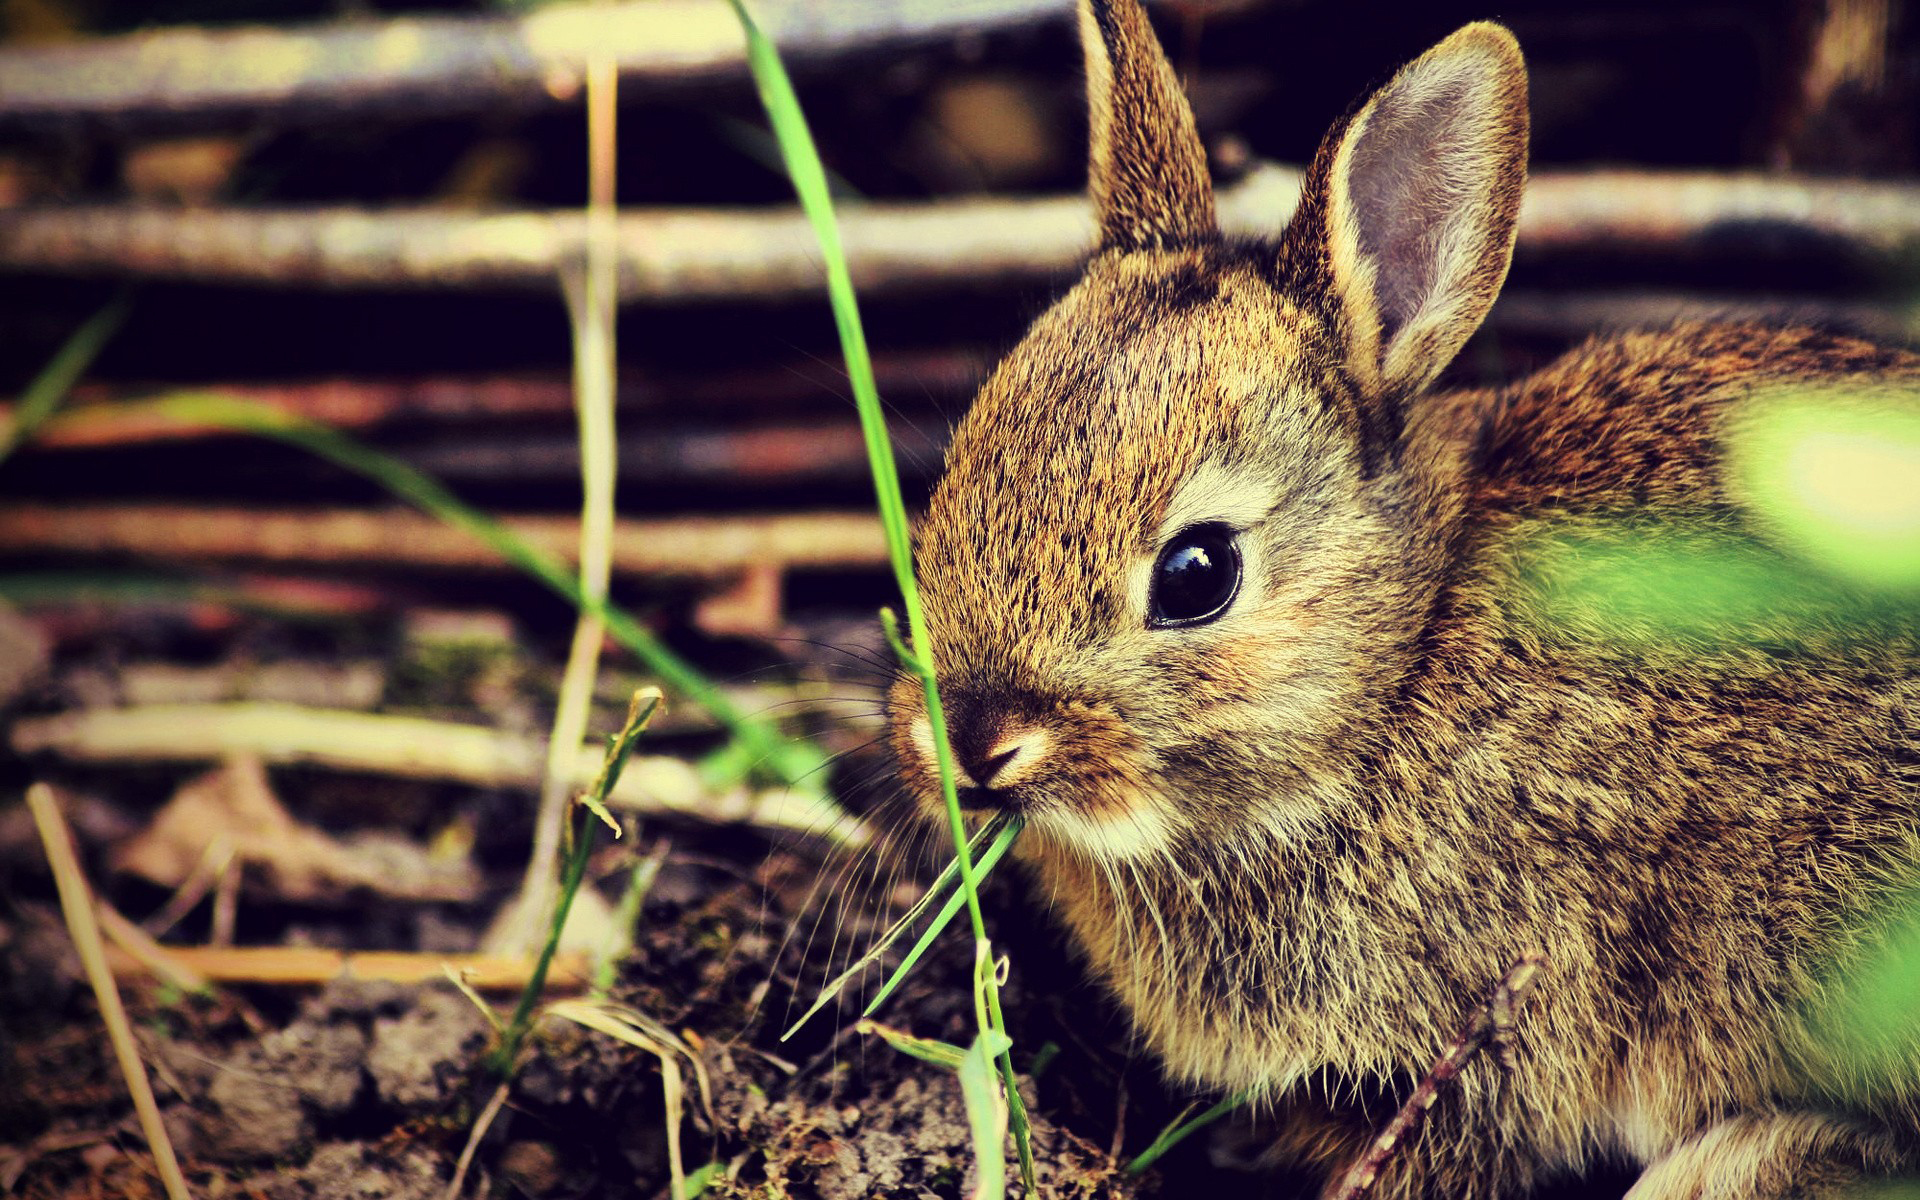 25531 download wallpaper Animals, Rabbits screensavers and pictures for free